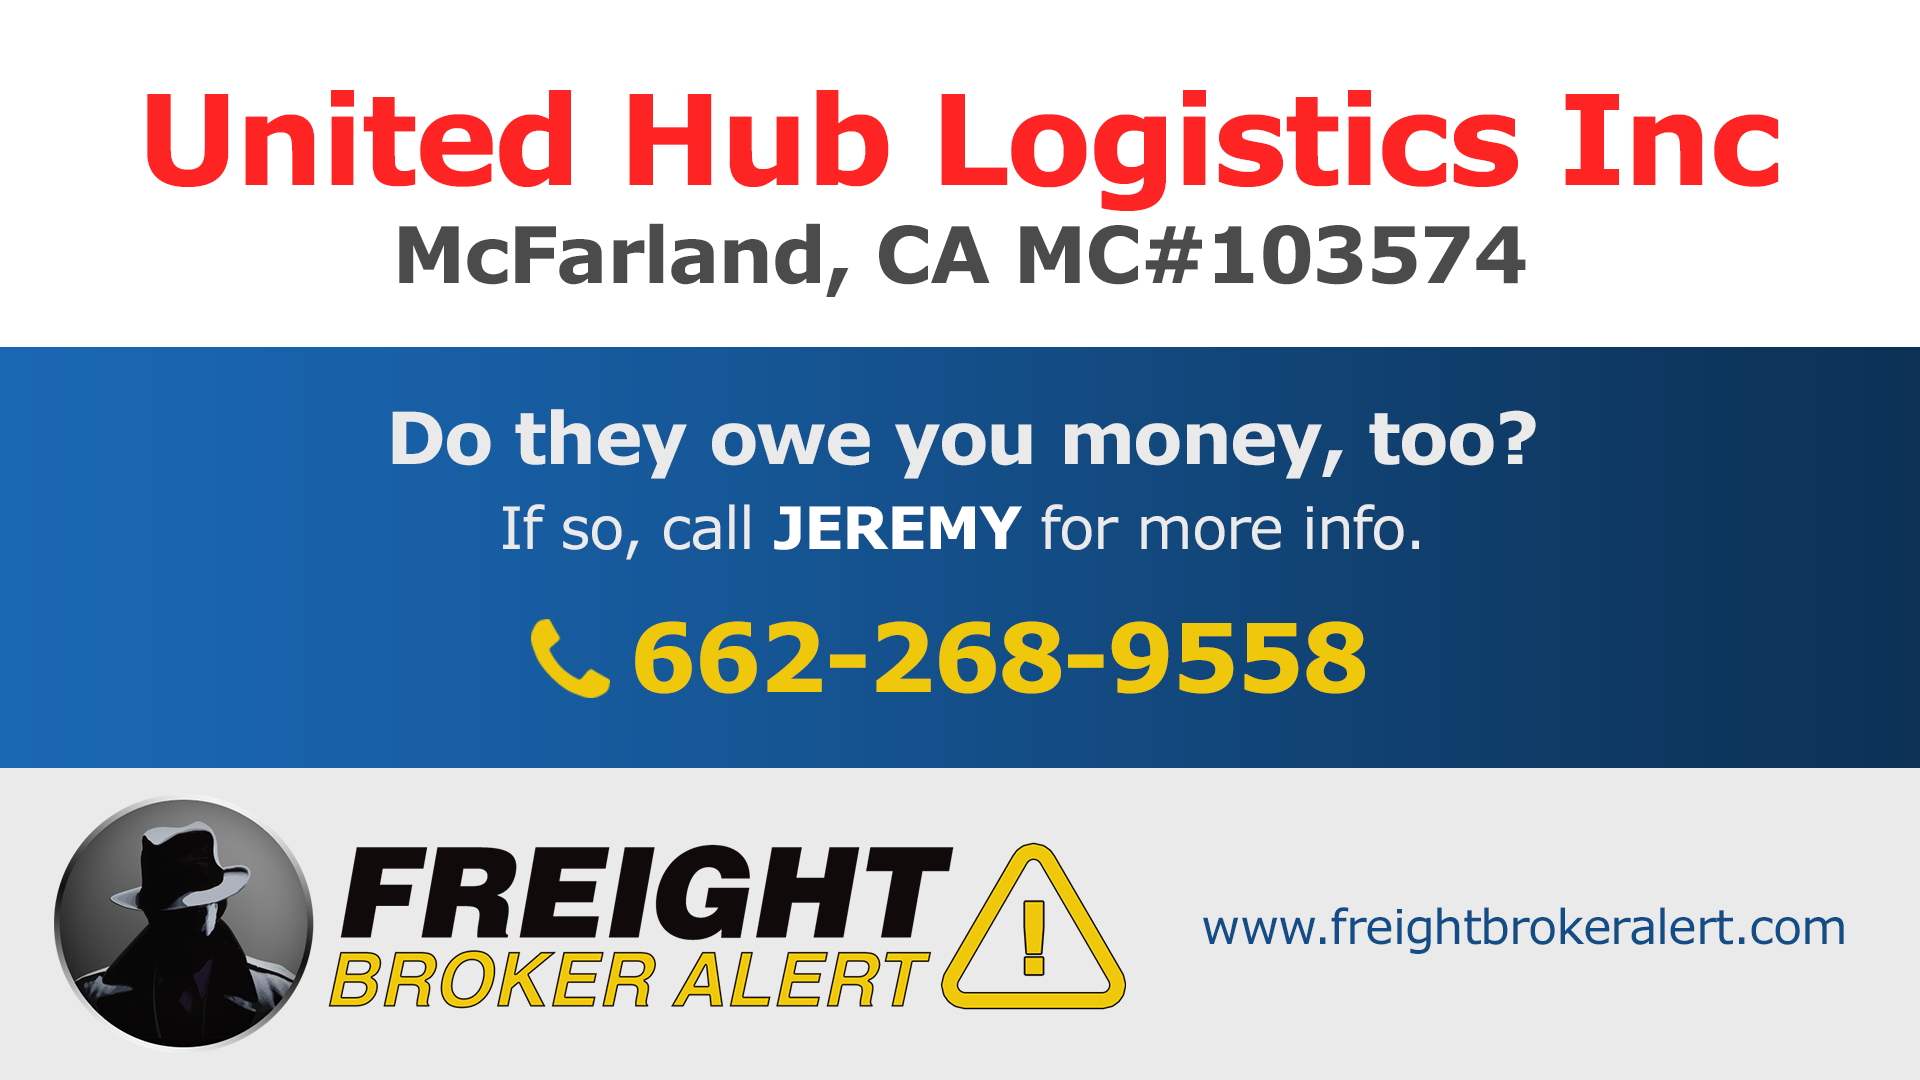 United Hub Logistics Inc California